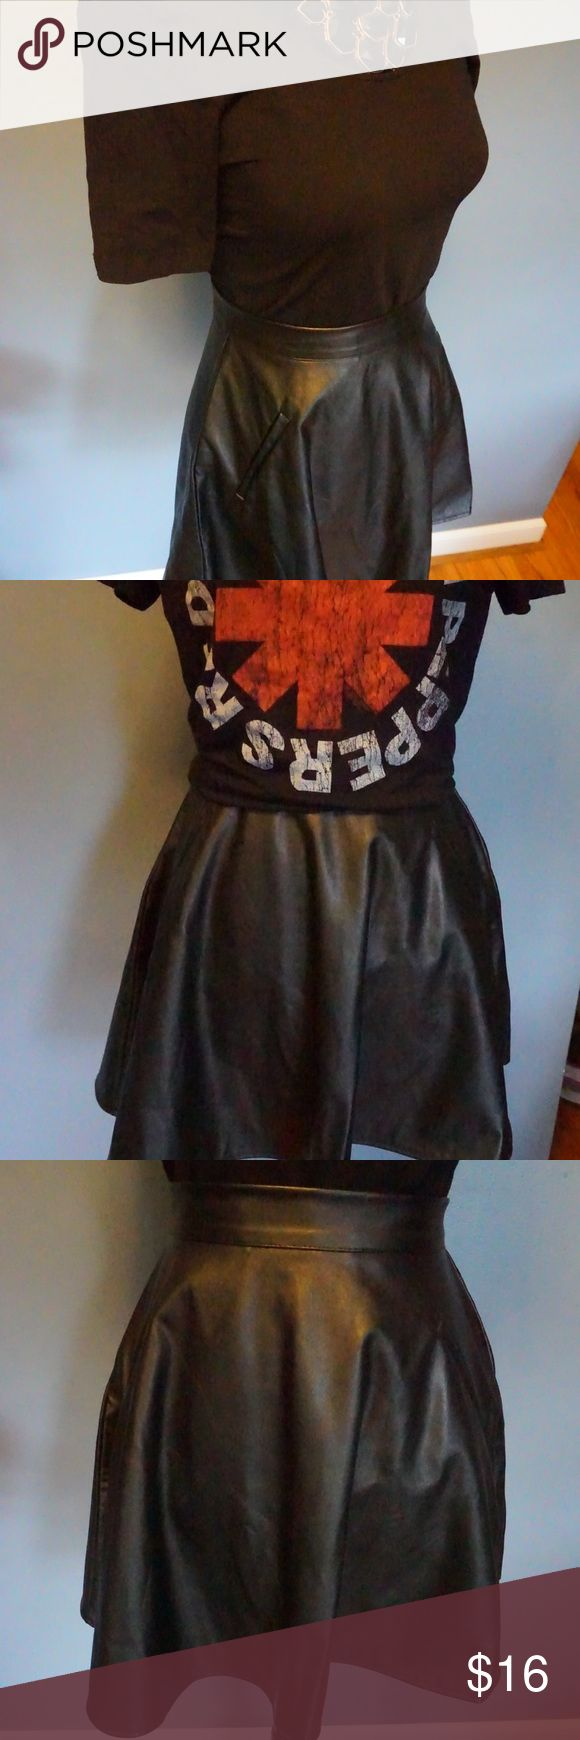 Black Faux Leather Skater Skirt Black Faux Leather Skater Skirt. Meant to be worn on waist. Faux pockets. So cute with a band tee.  Never worn because it's too small. Skirts Mini